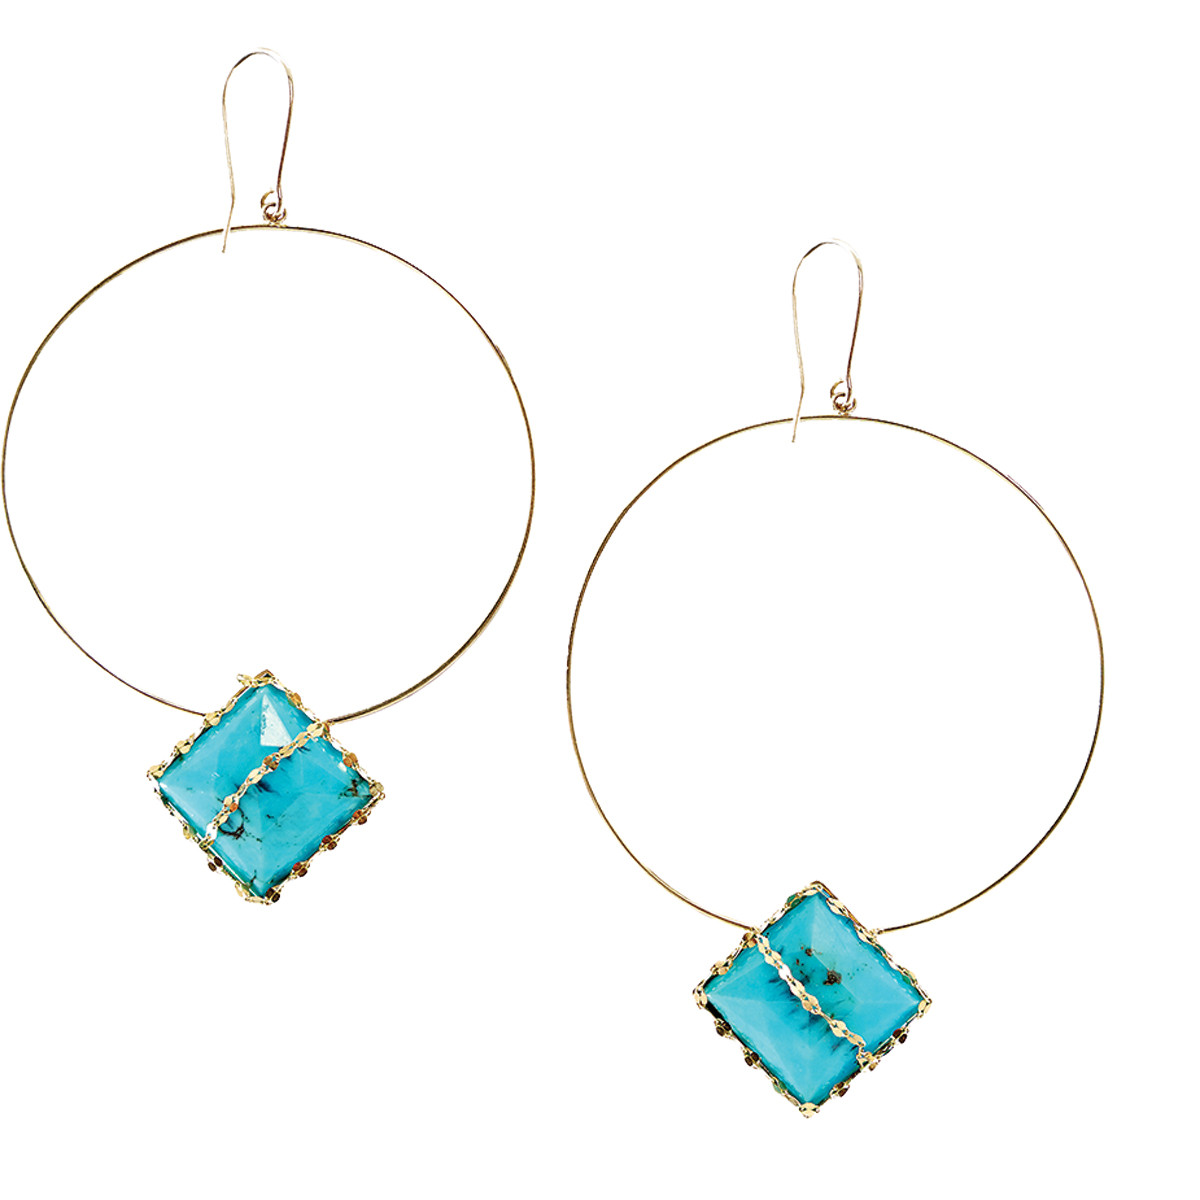 New Lana Turquoise Bliss Earrings